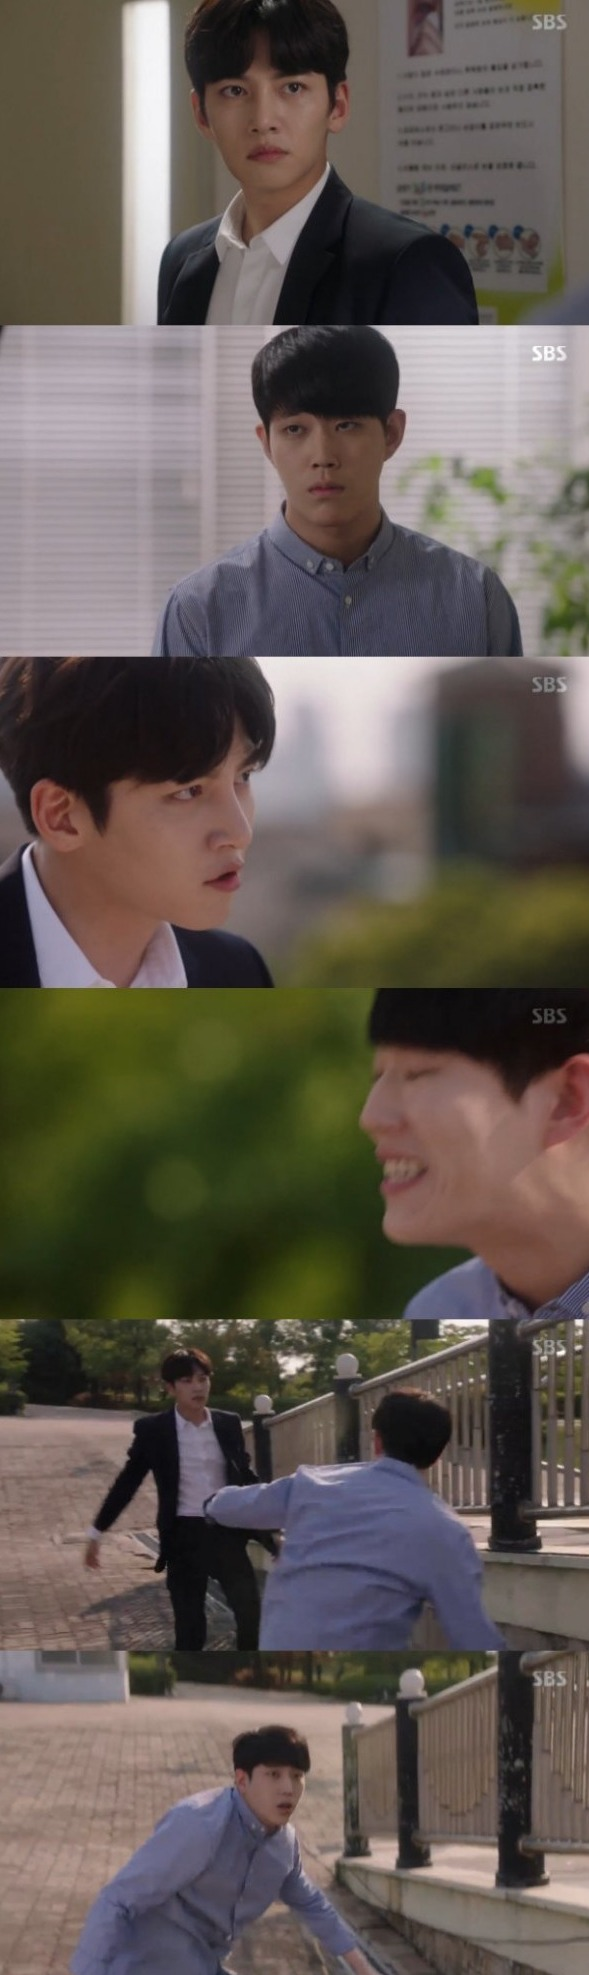 [Spoiler] Added episodes 25 and 26 captures for the Korean drama 'Suspicious Partner'